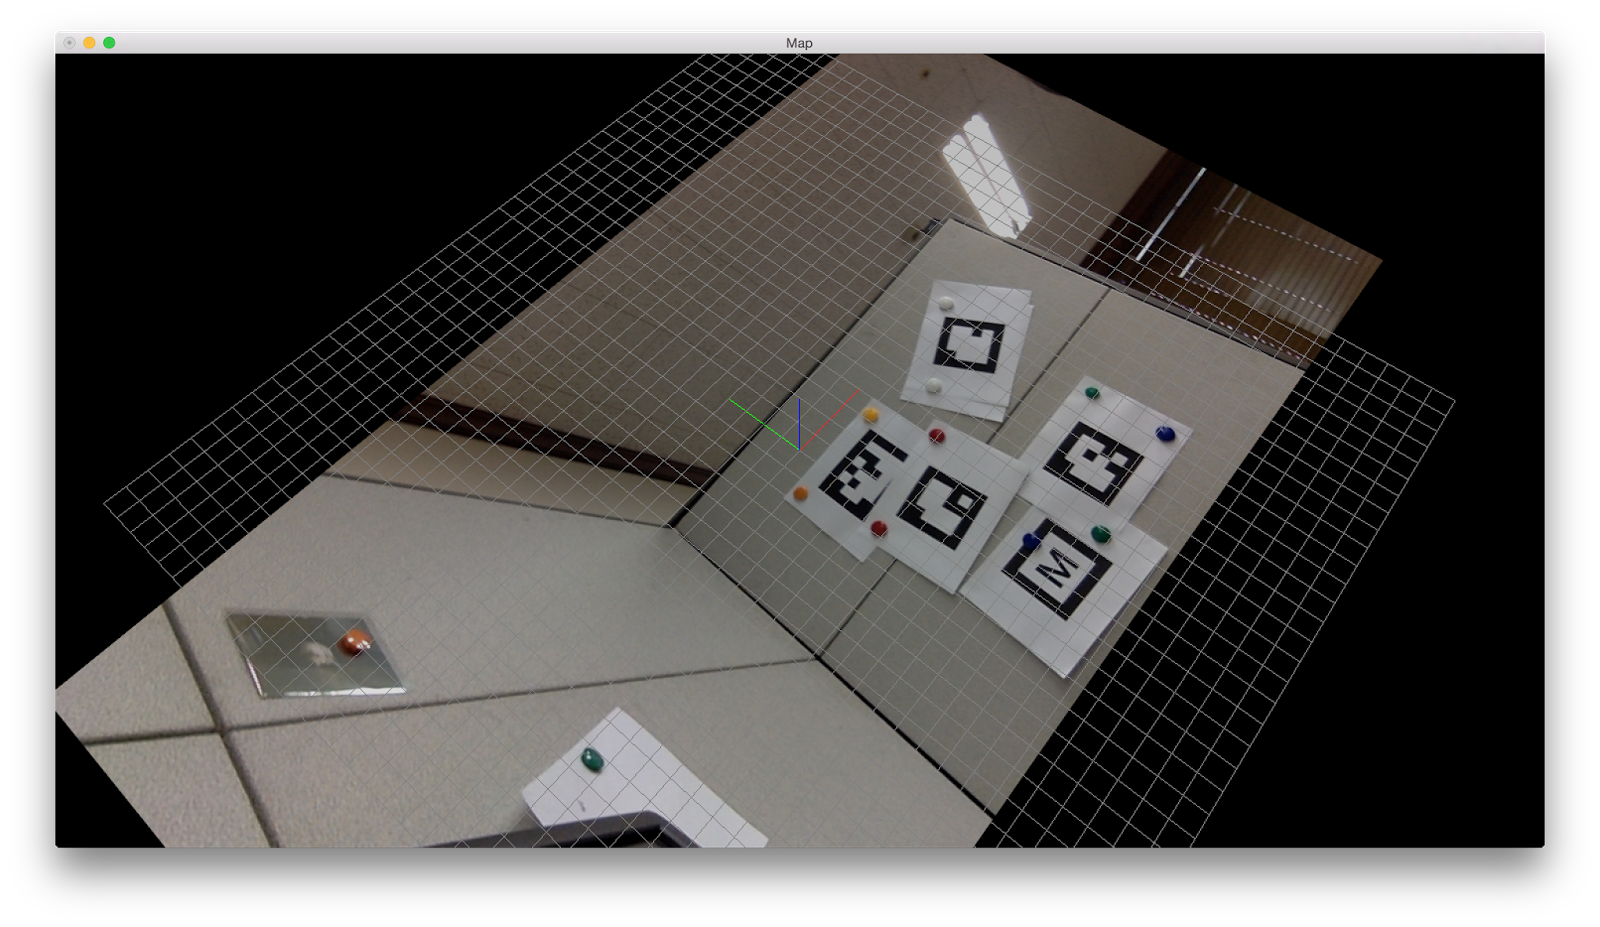 opencv webcam real-time display on OpenGL 3d texture  | MakeEYEDEA